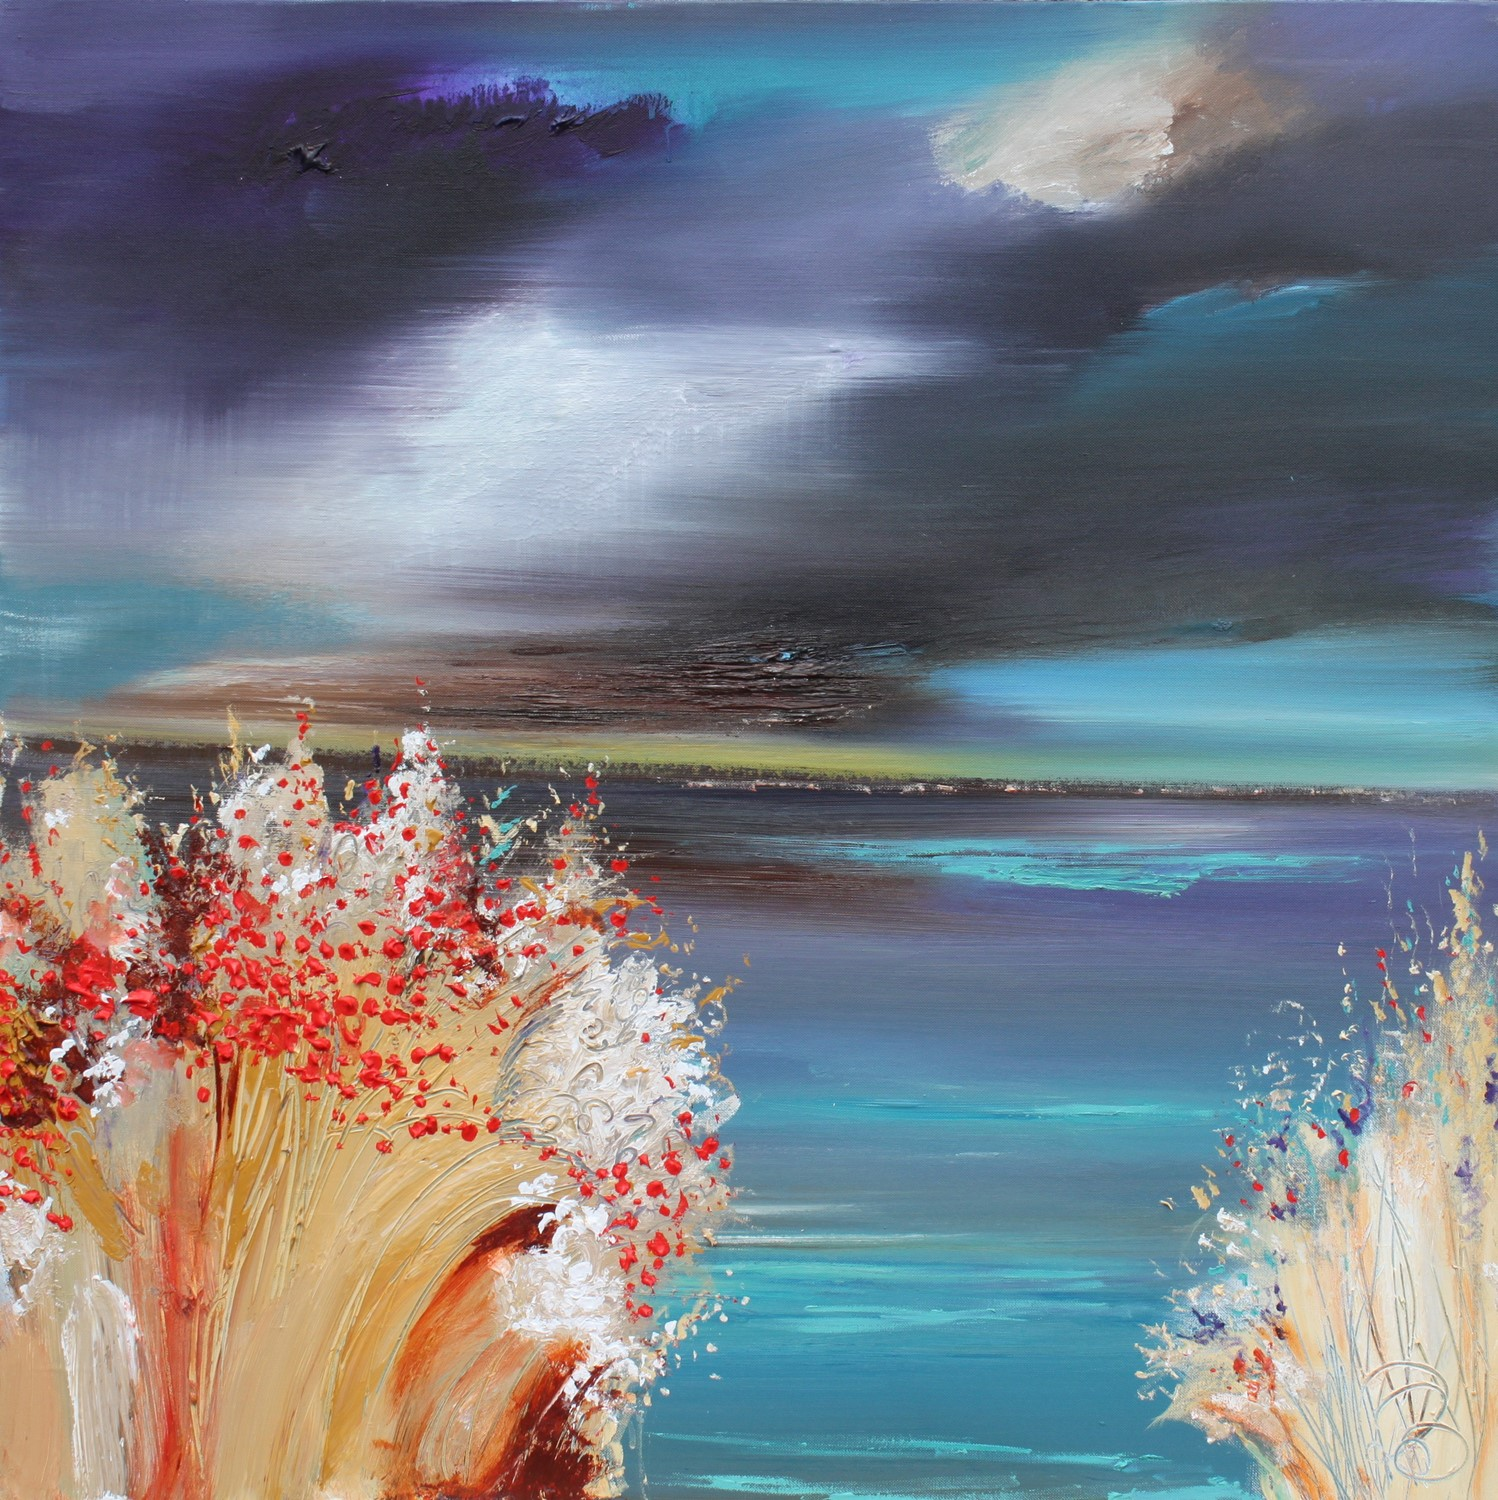 'Heavy Skies' by artist Rosanne Barr